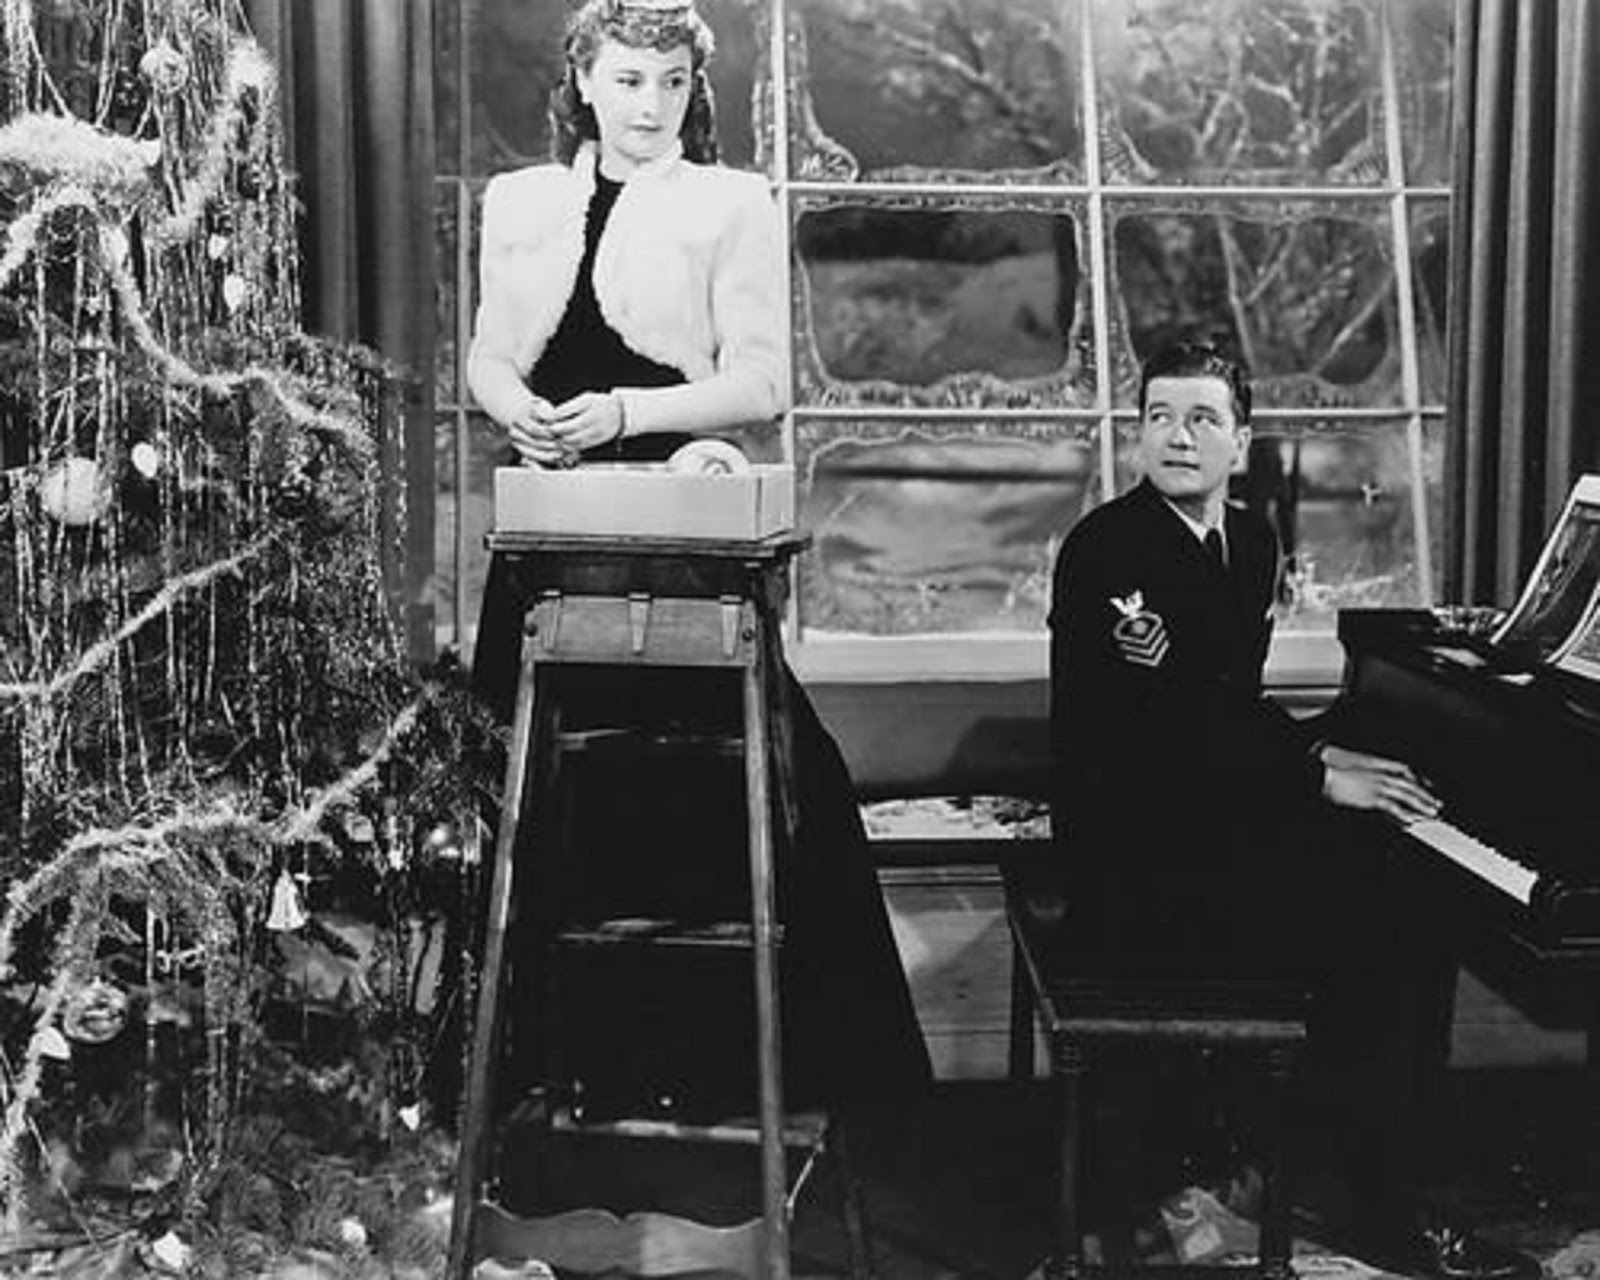 Another Old Movie Blog: This and that - December